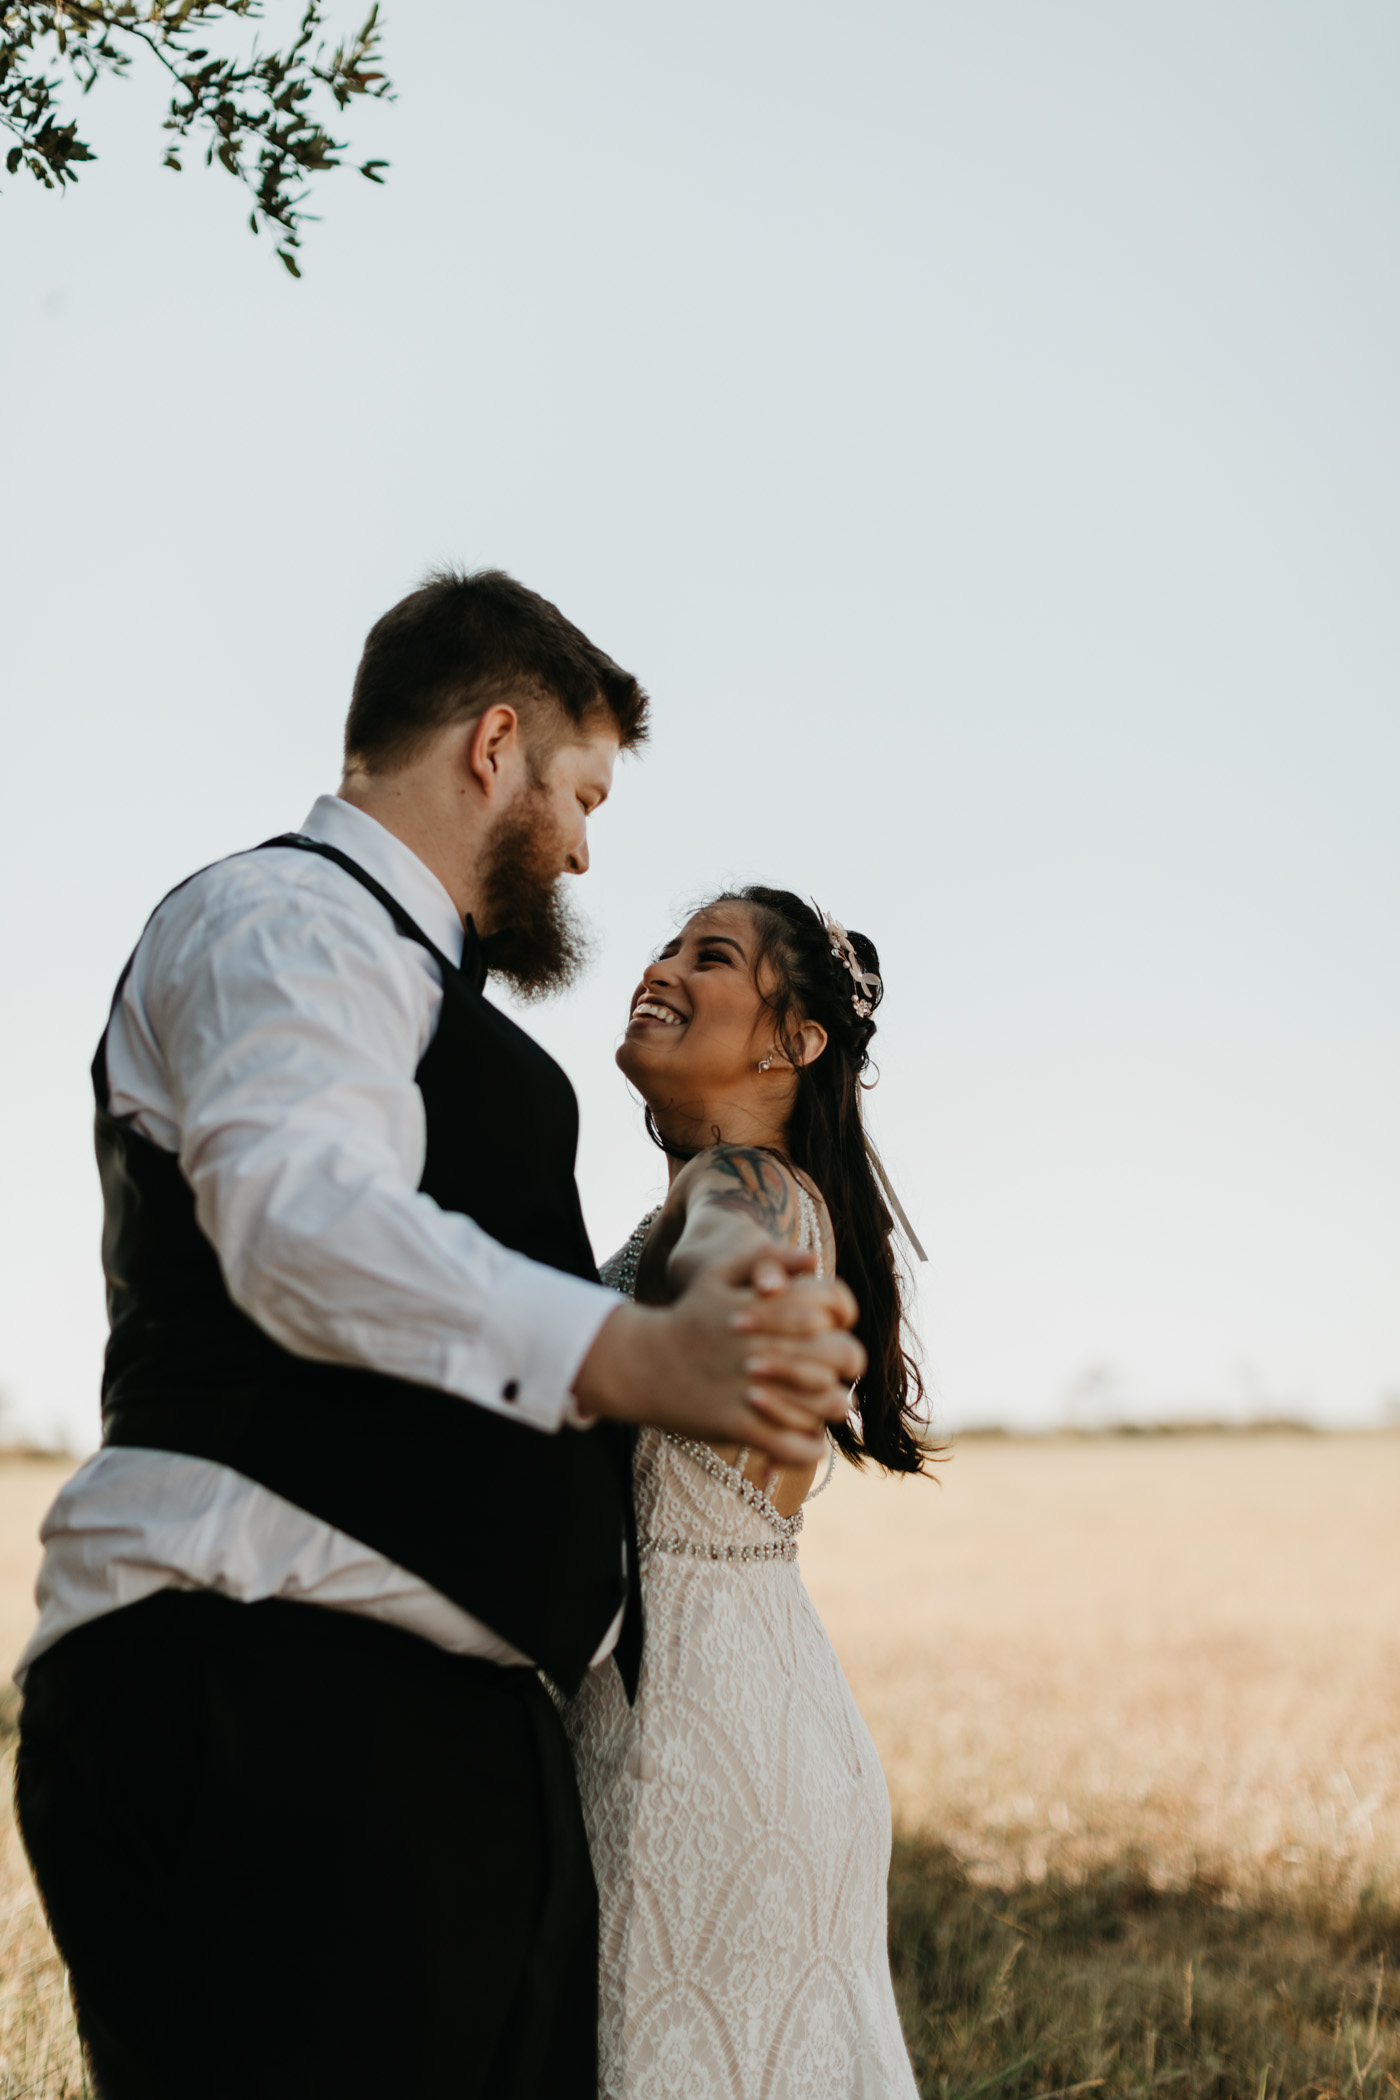 Bride and groom dancing around in a field after their wedding ceremony